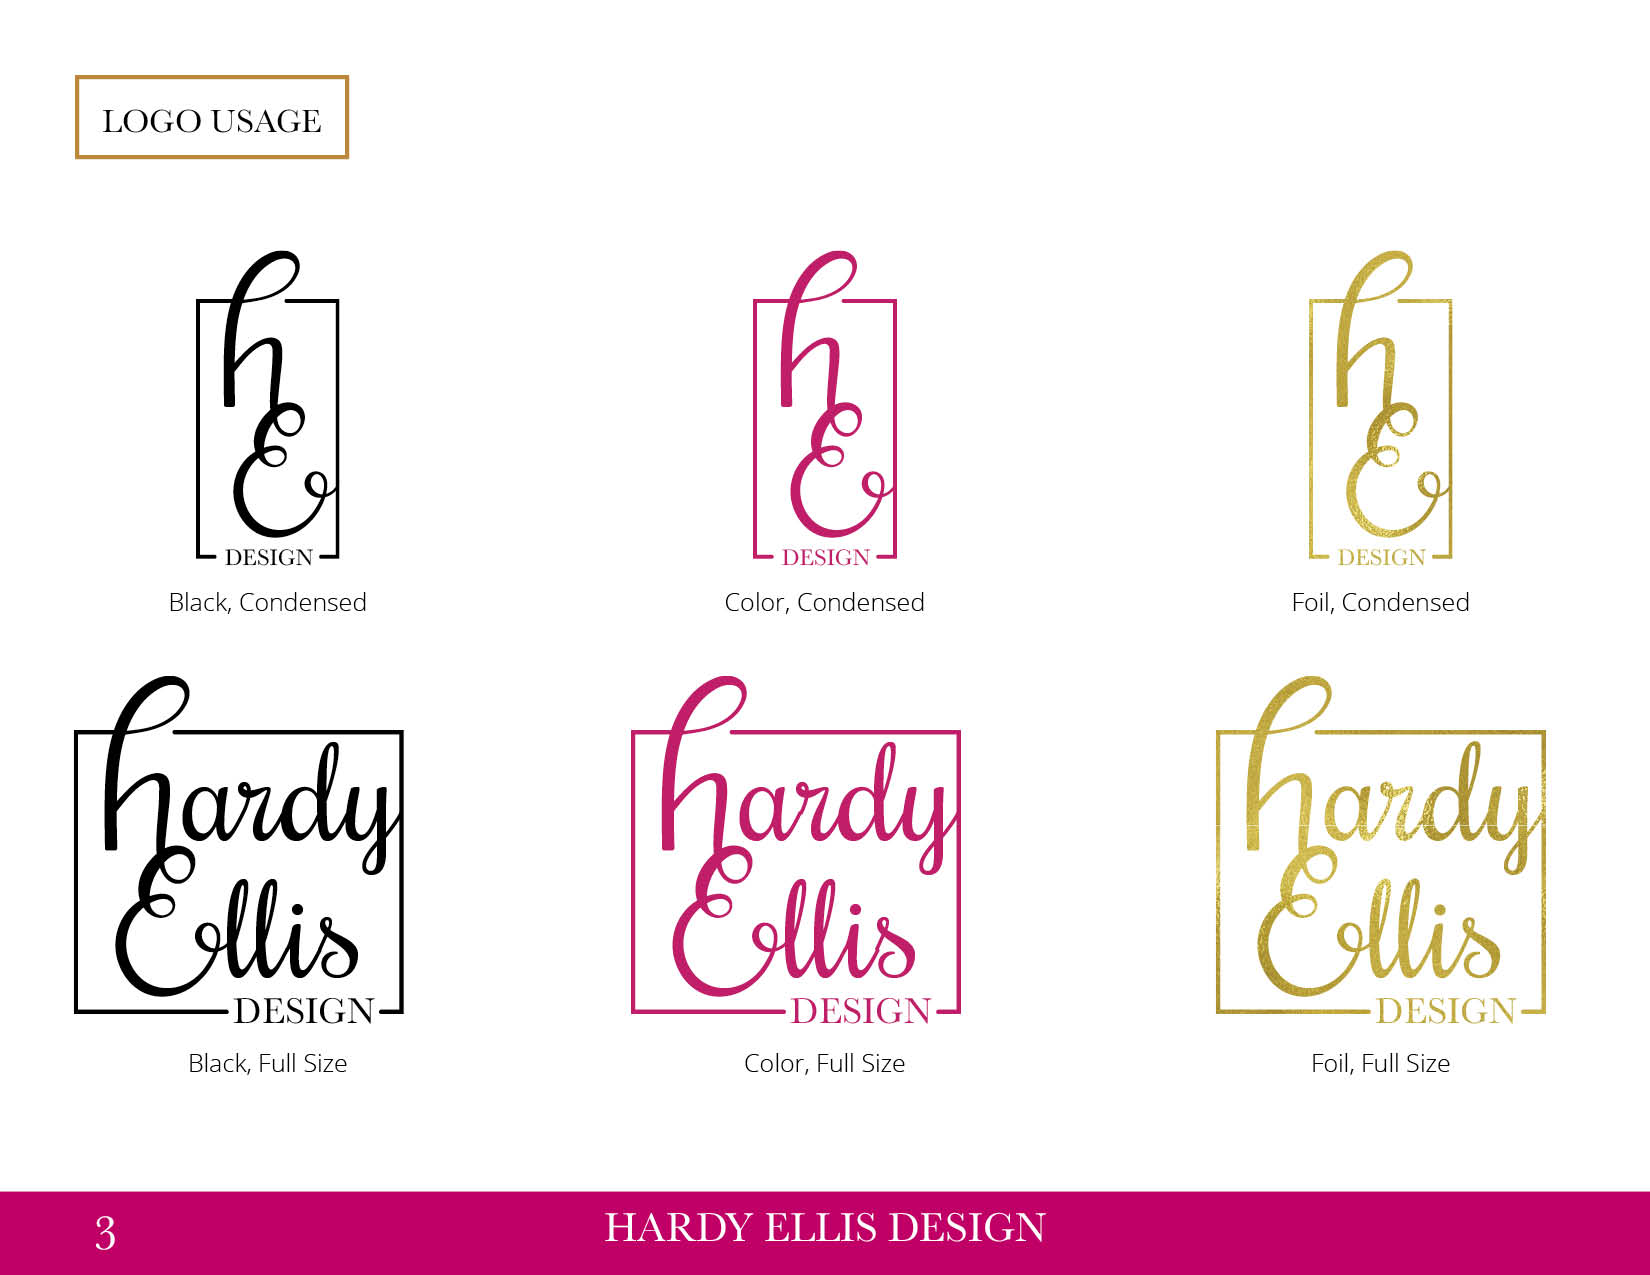 Hardy Ellis Design Style Guide3